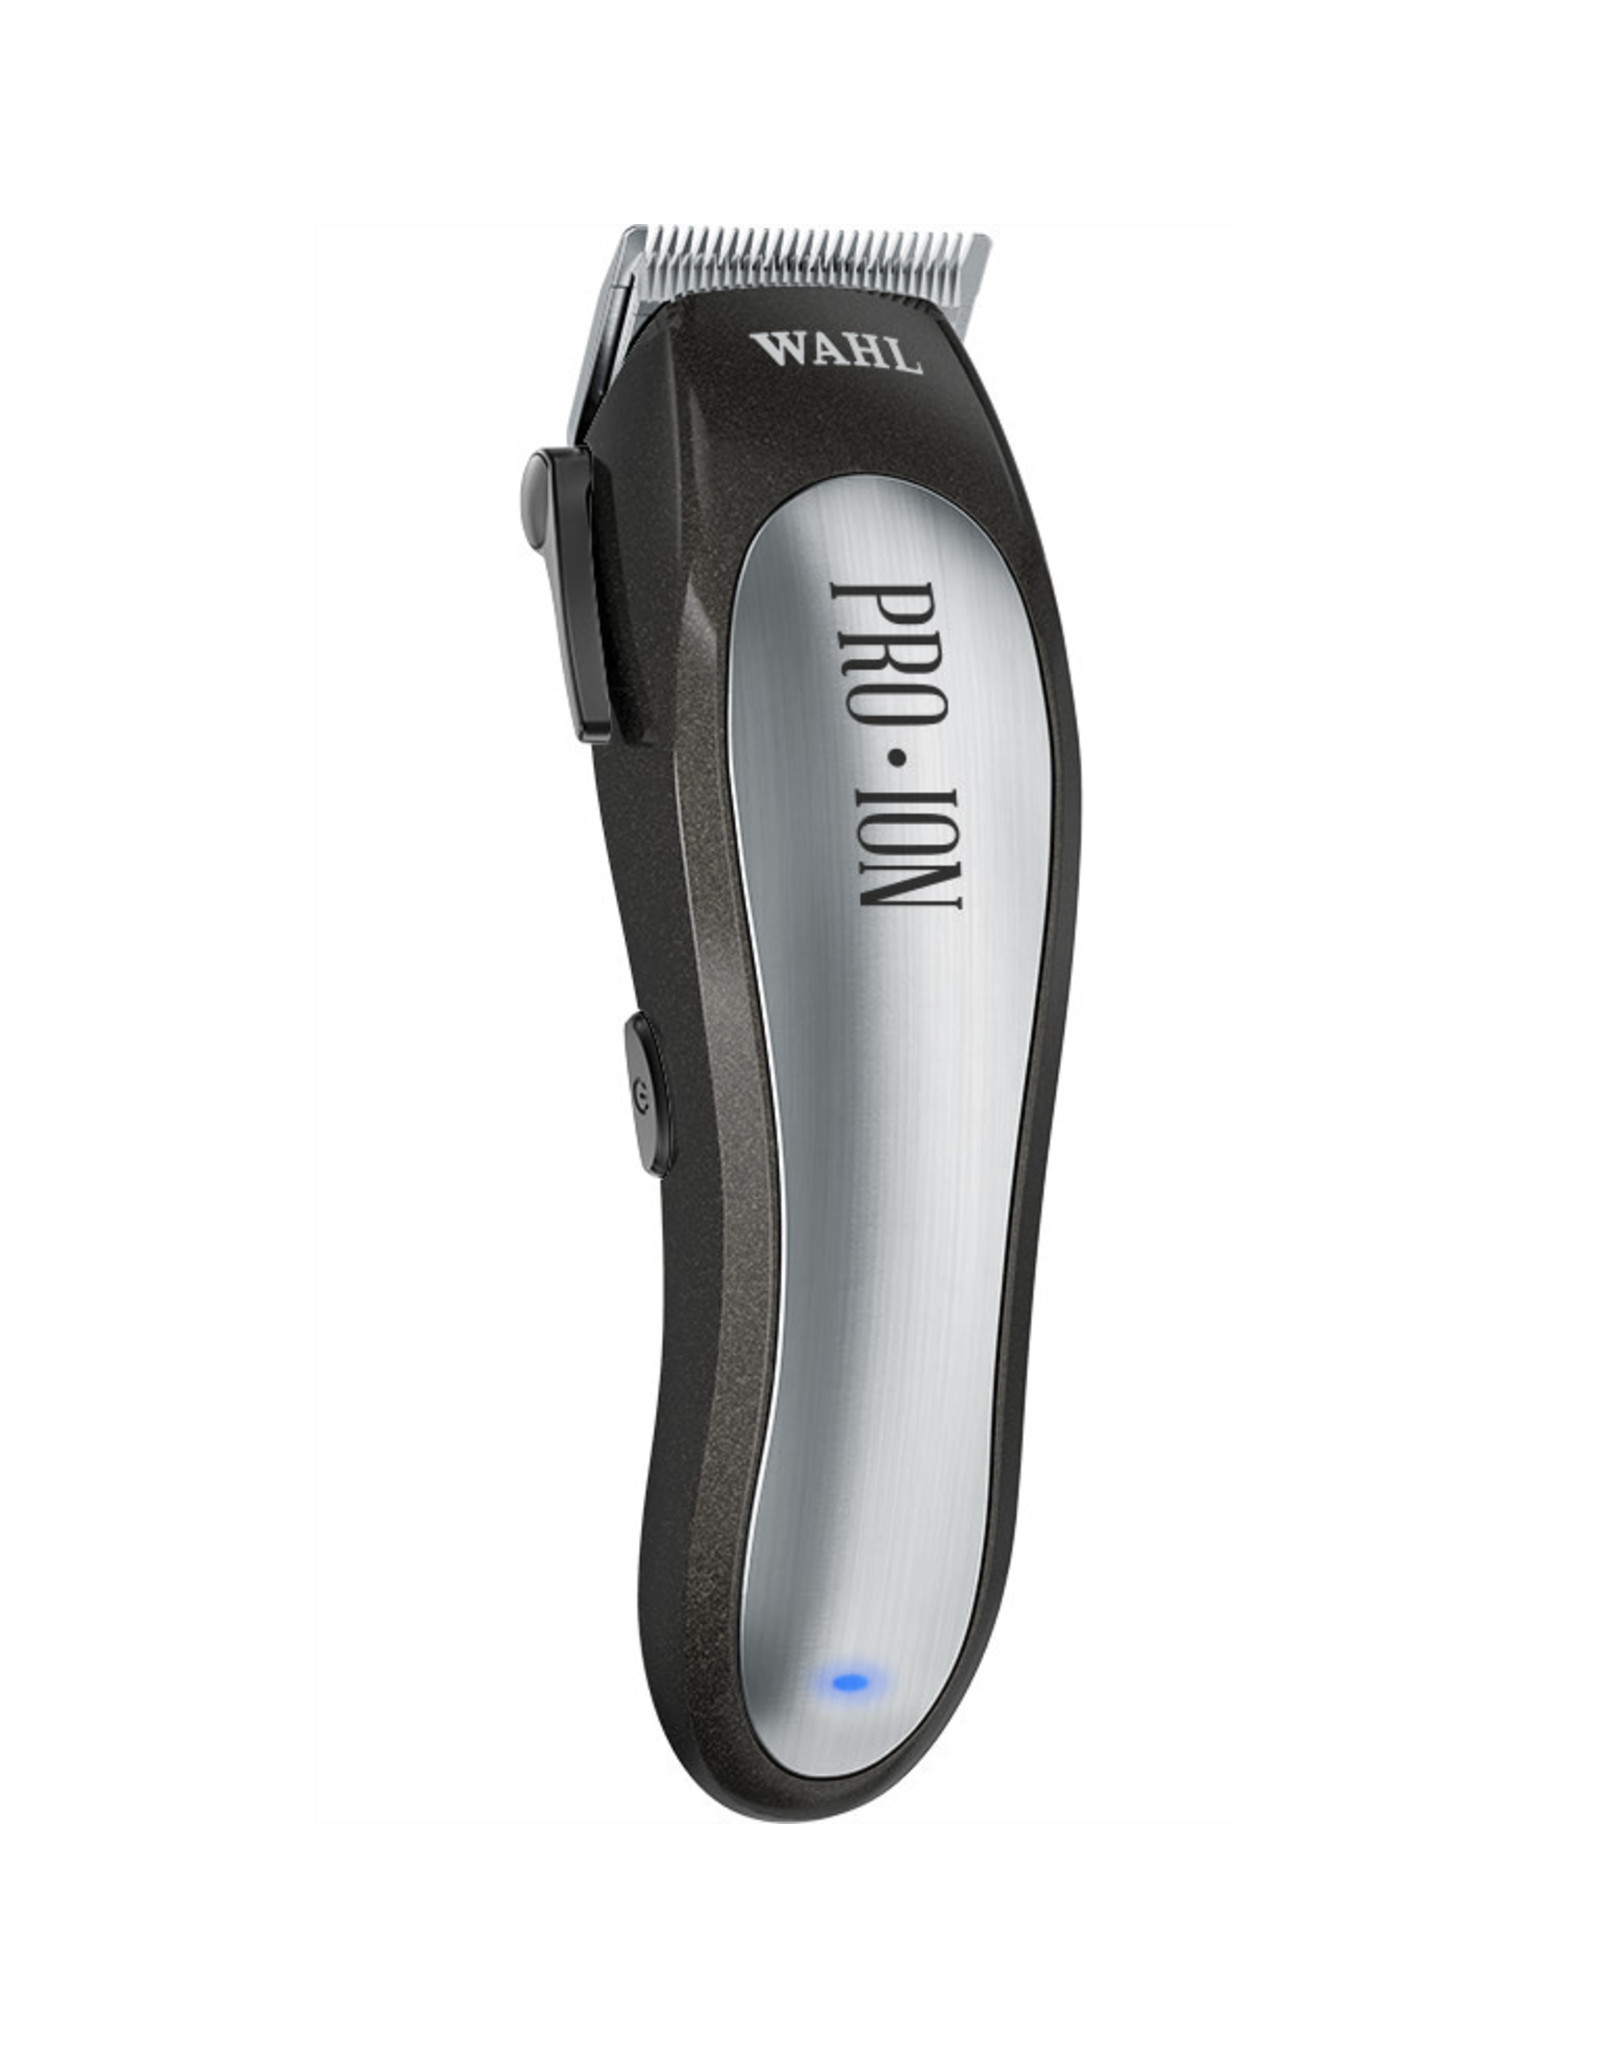 Wahl Wahl Pro Ion Rechargeable Cordless Clipper